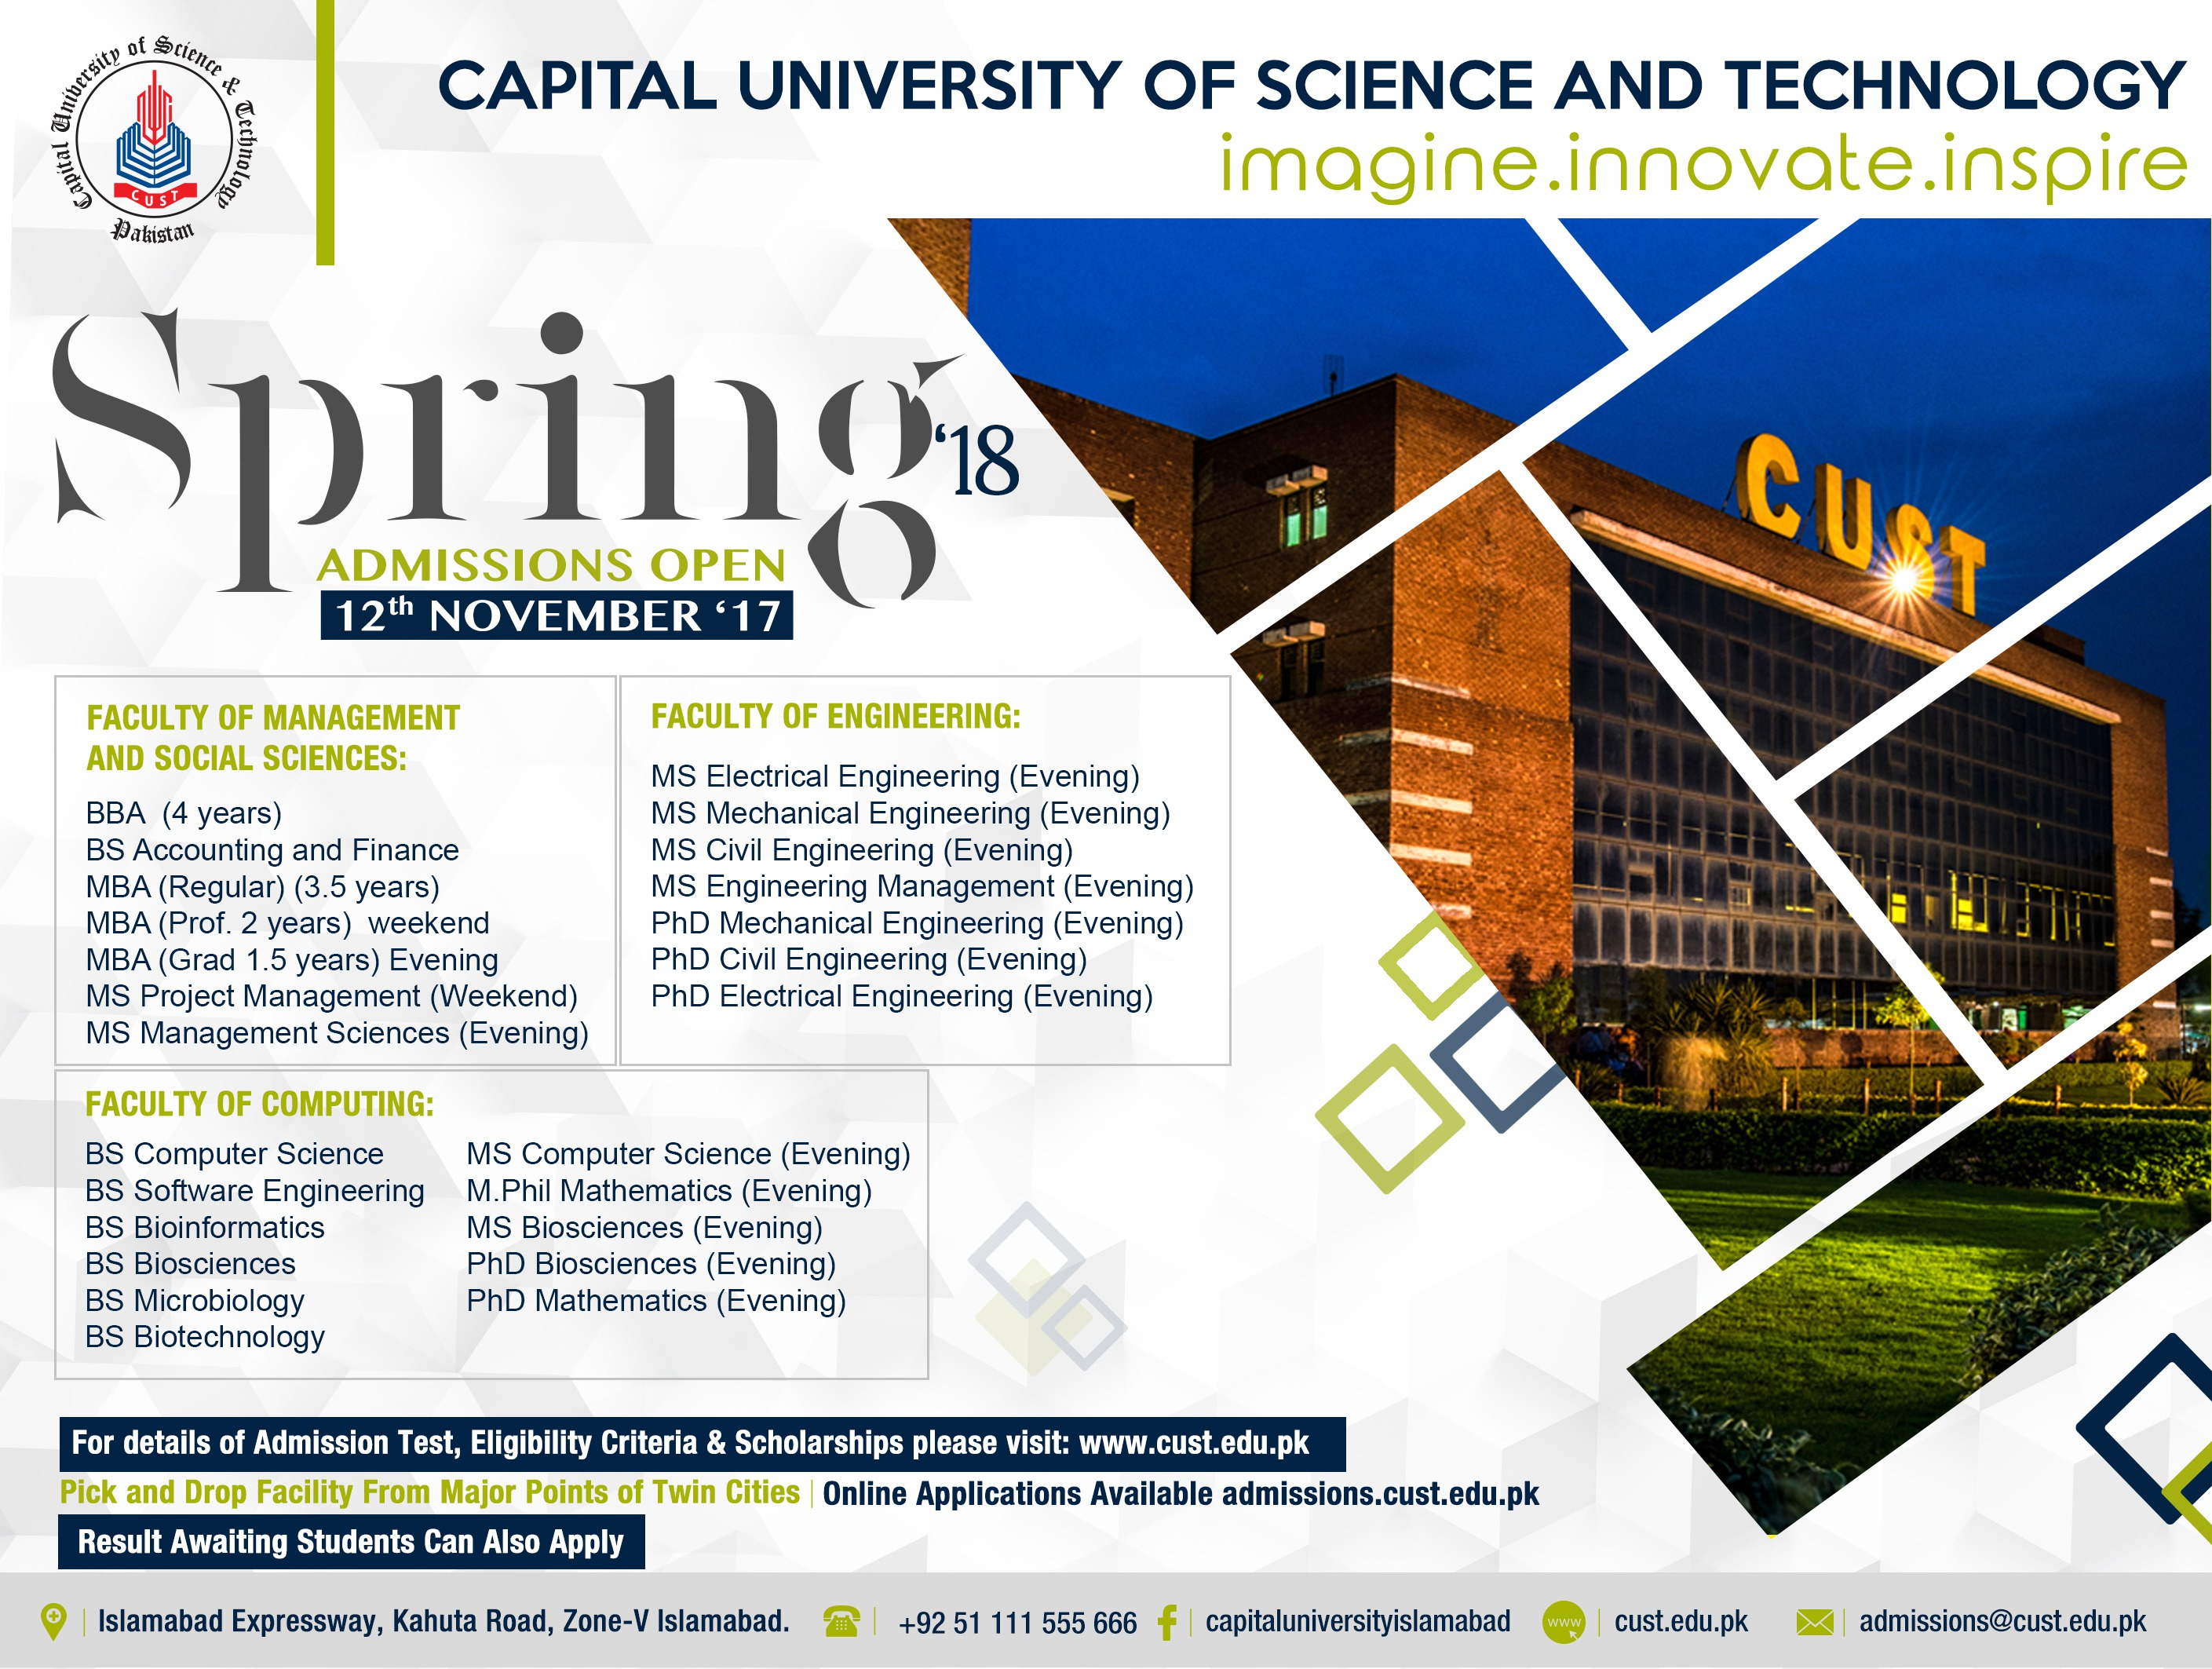 Capital University of Science and Technology – Spring Admissions 2018